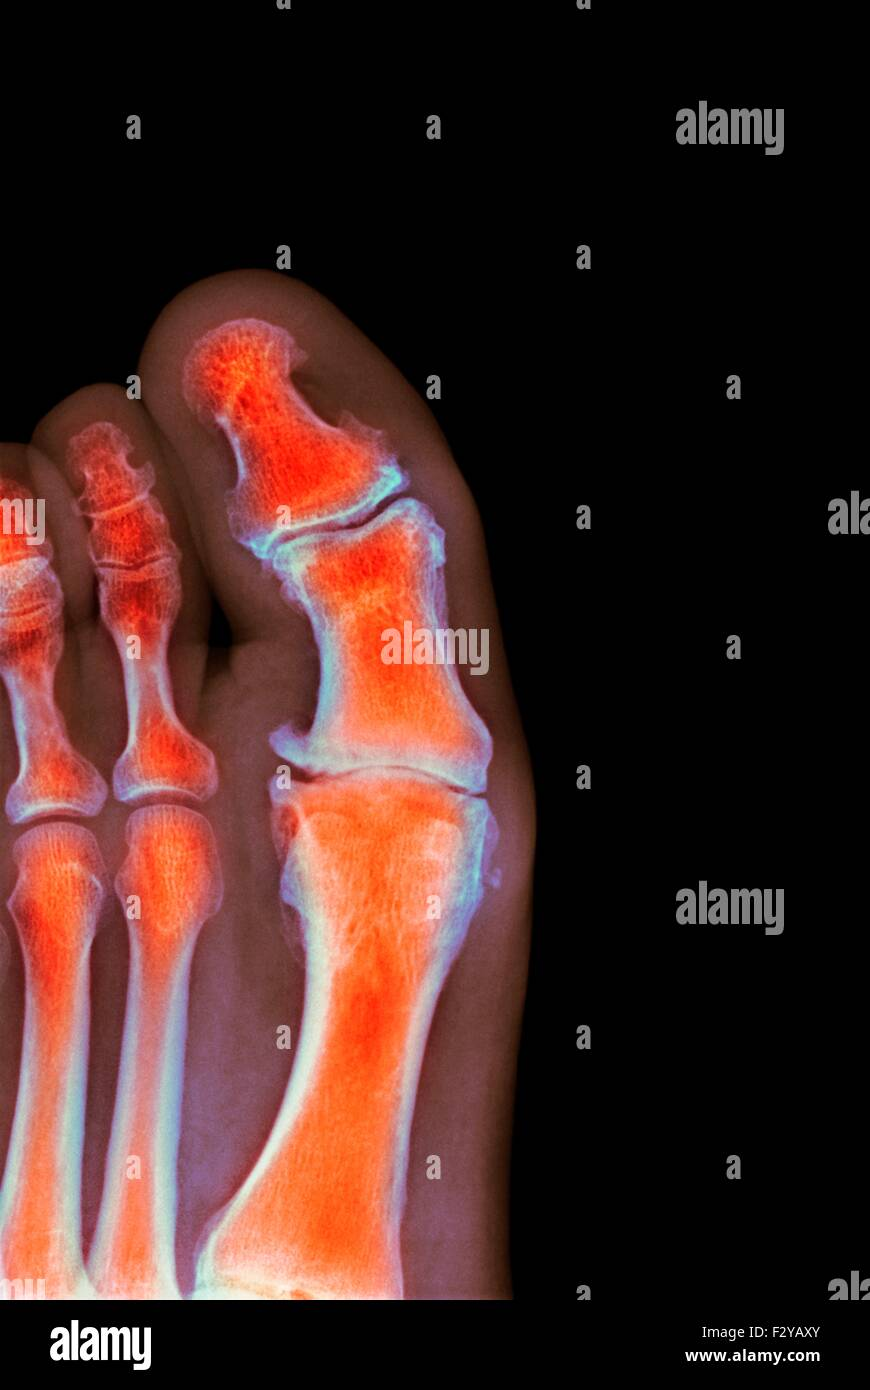 Foot Xray Stock Photos Foot Xray Stock Images Alamy